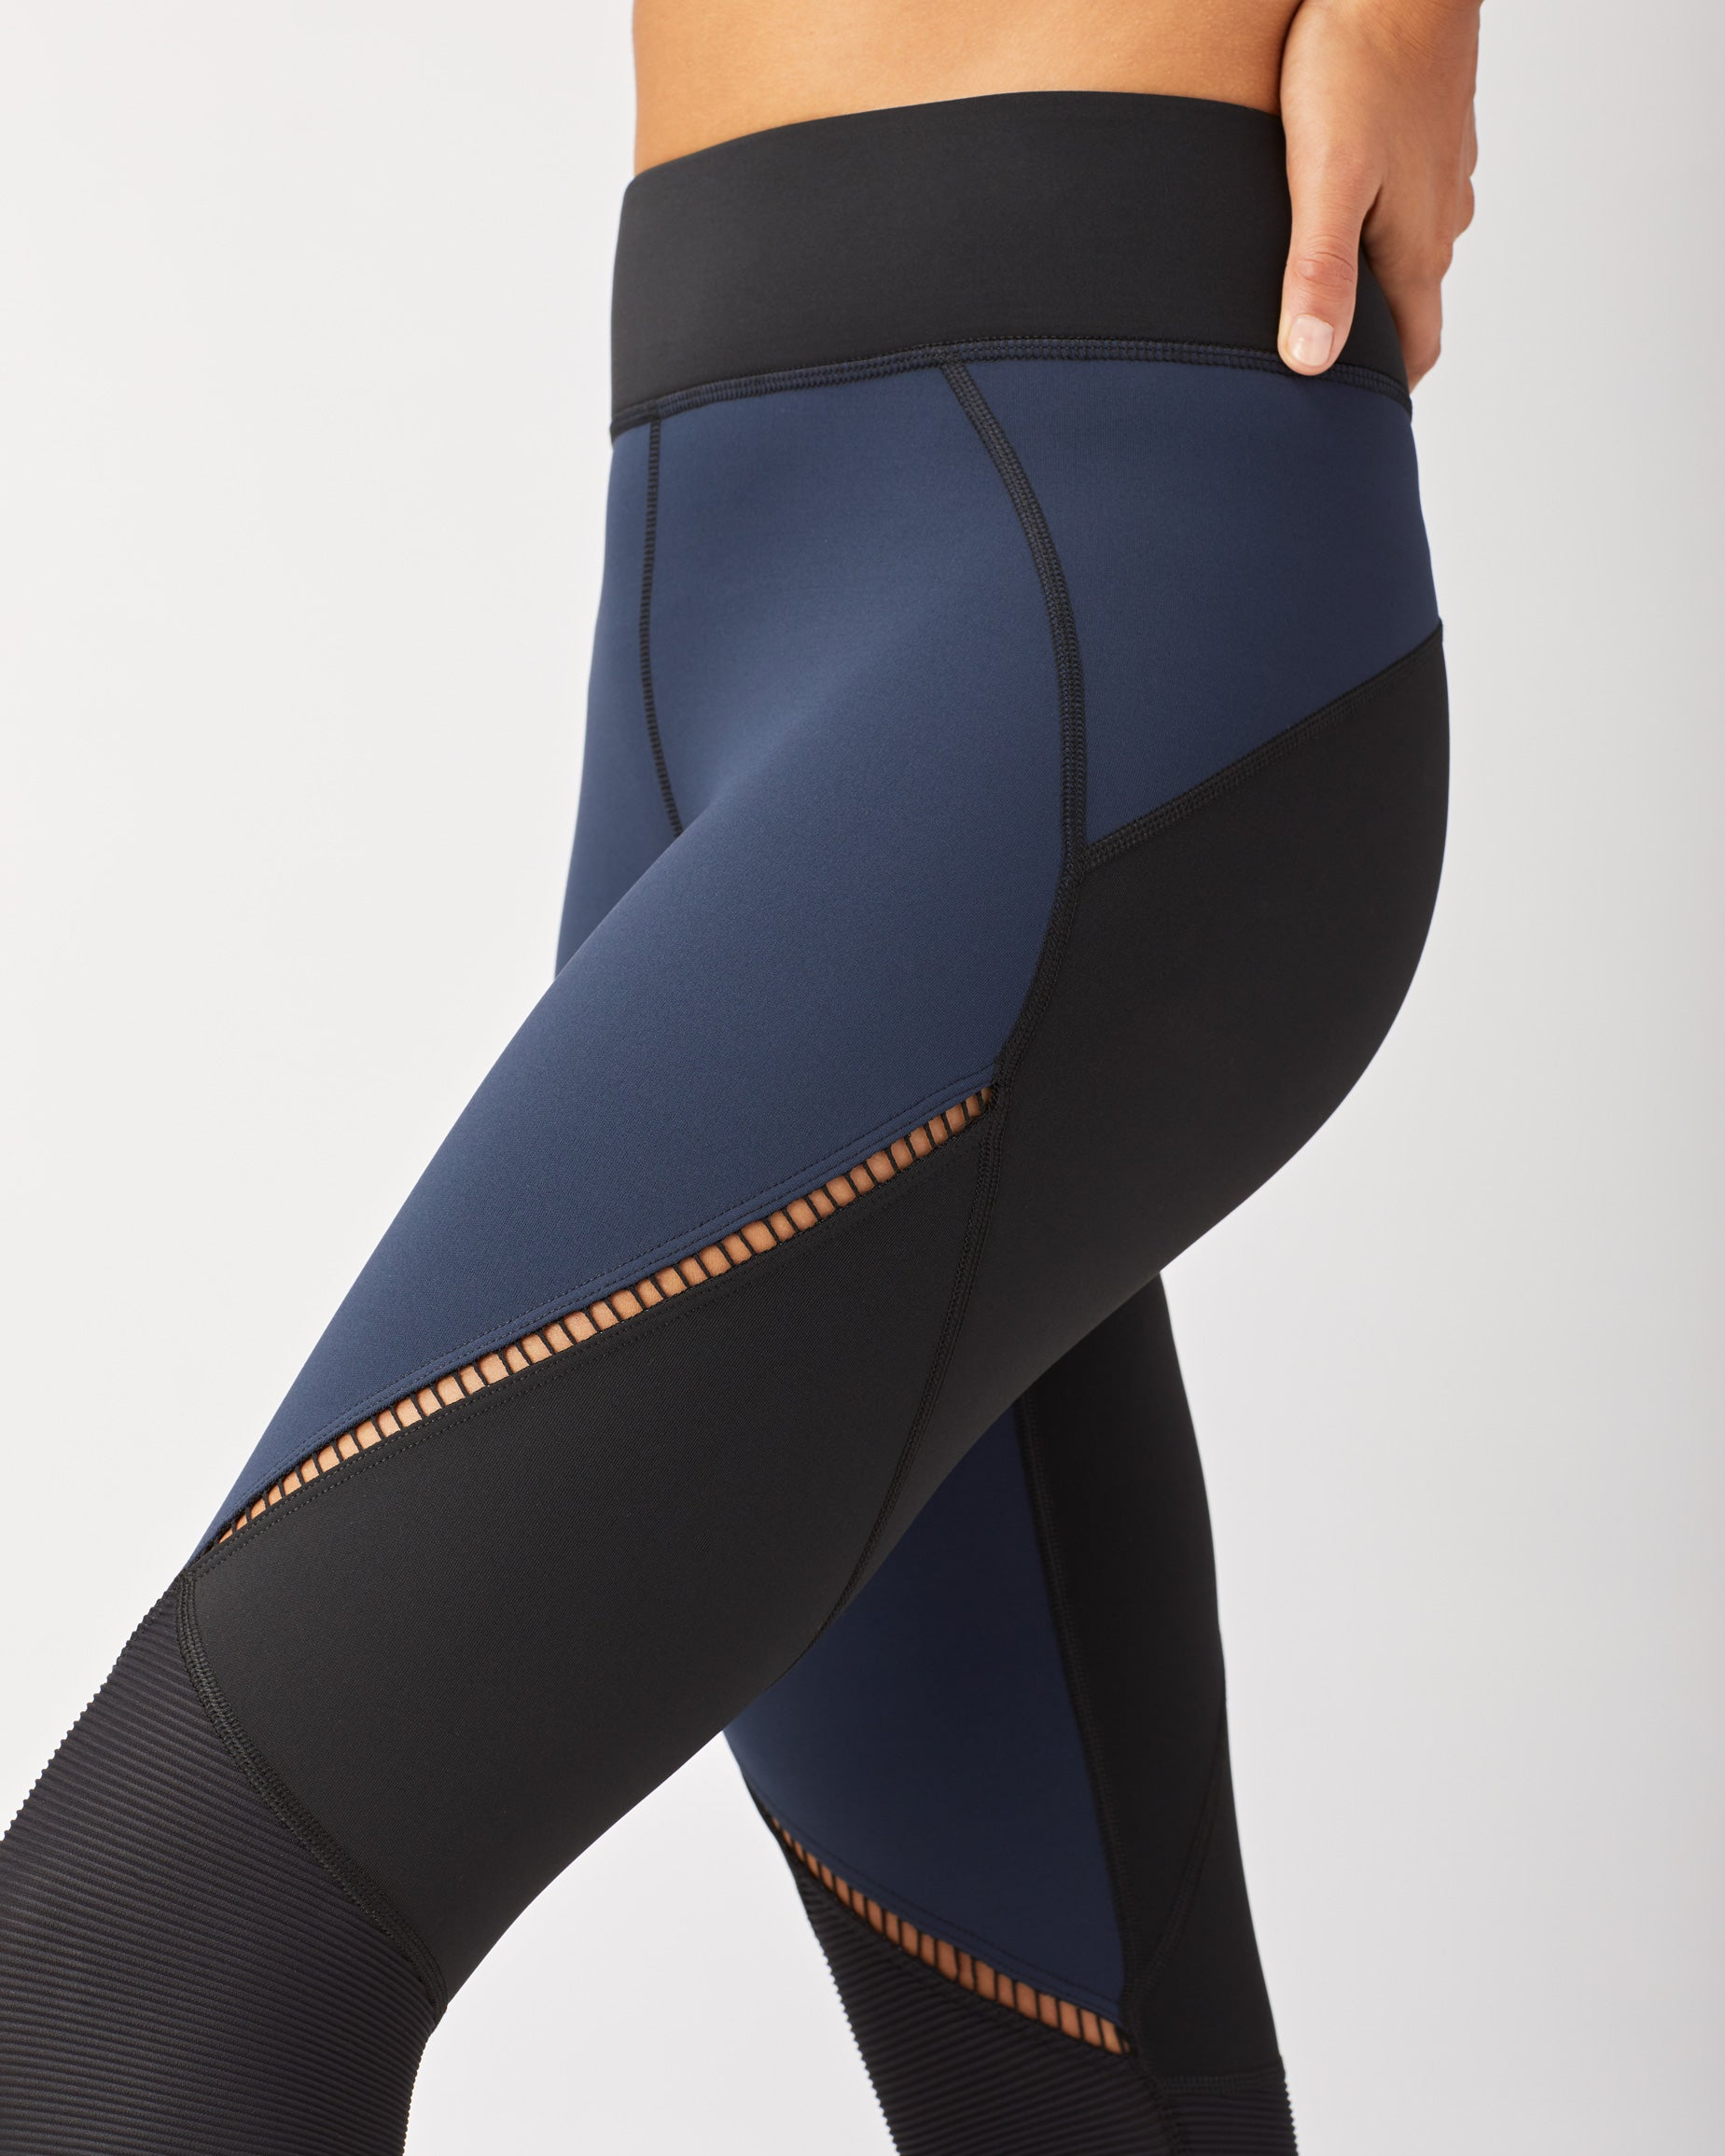 evolve-legging-navy-black